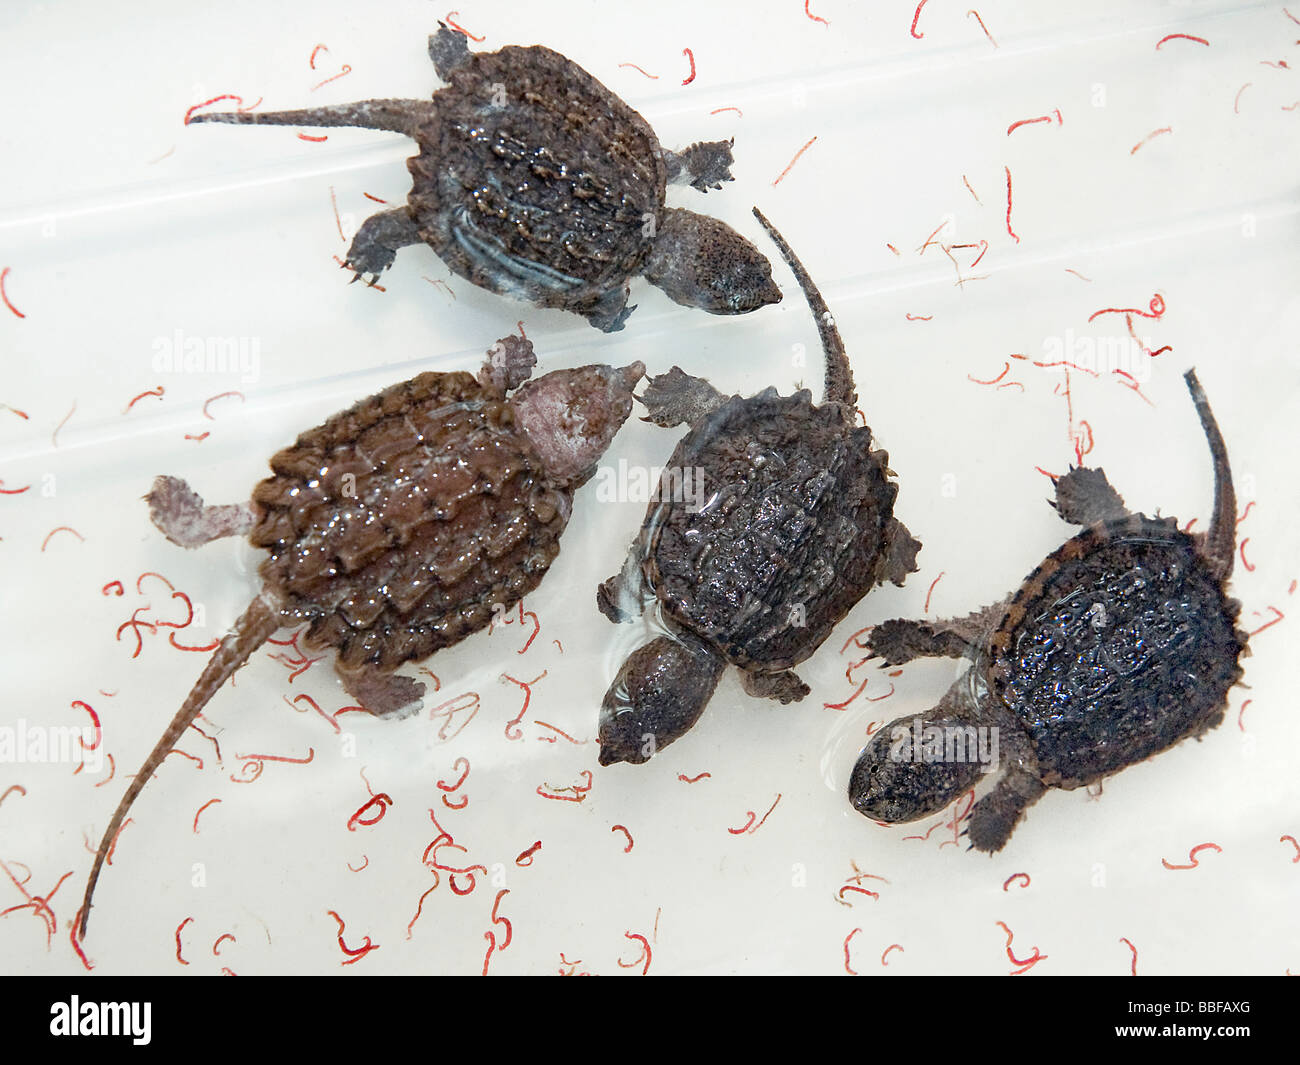 Baby alligator snapping turtles Macrochelys temminckii with bloodworms for sale in Hong Kong - Stock Image